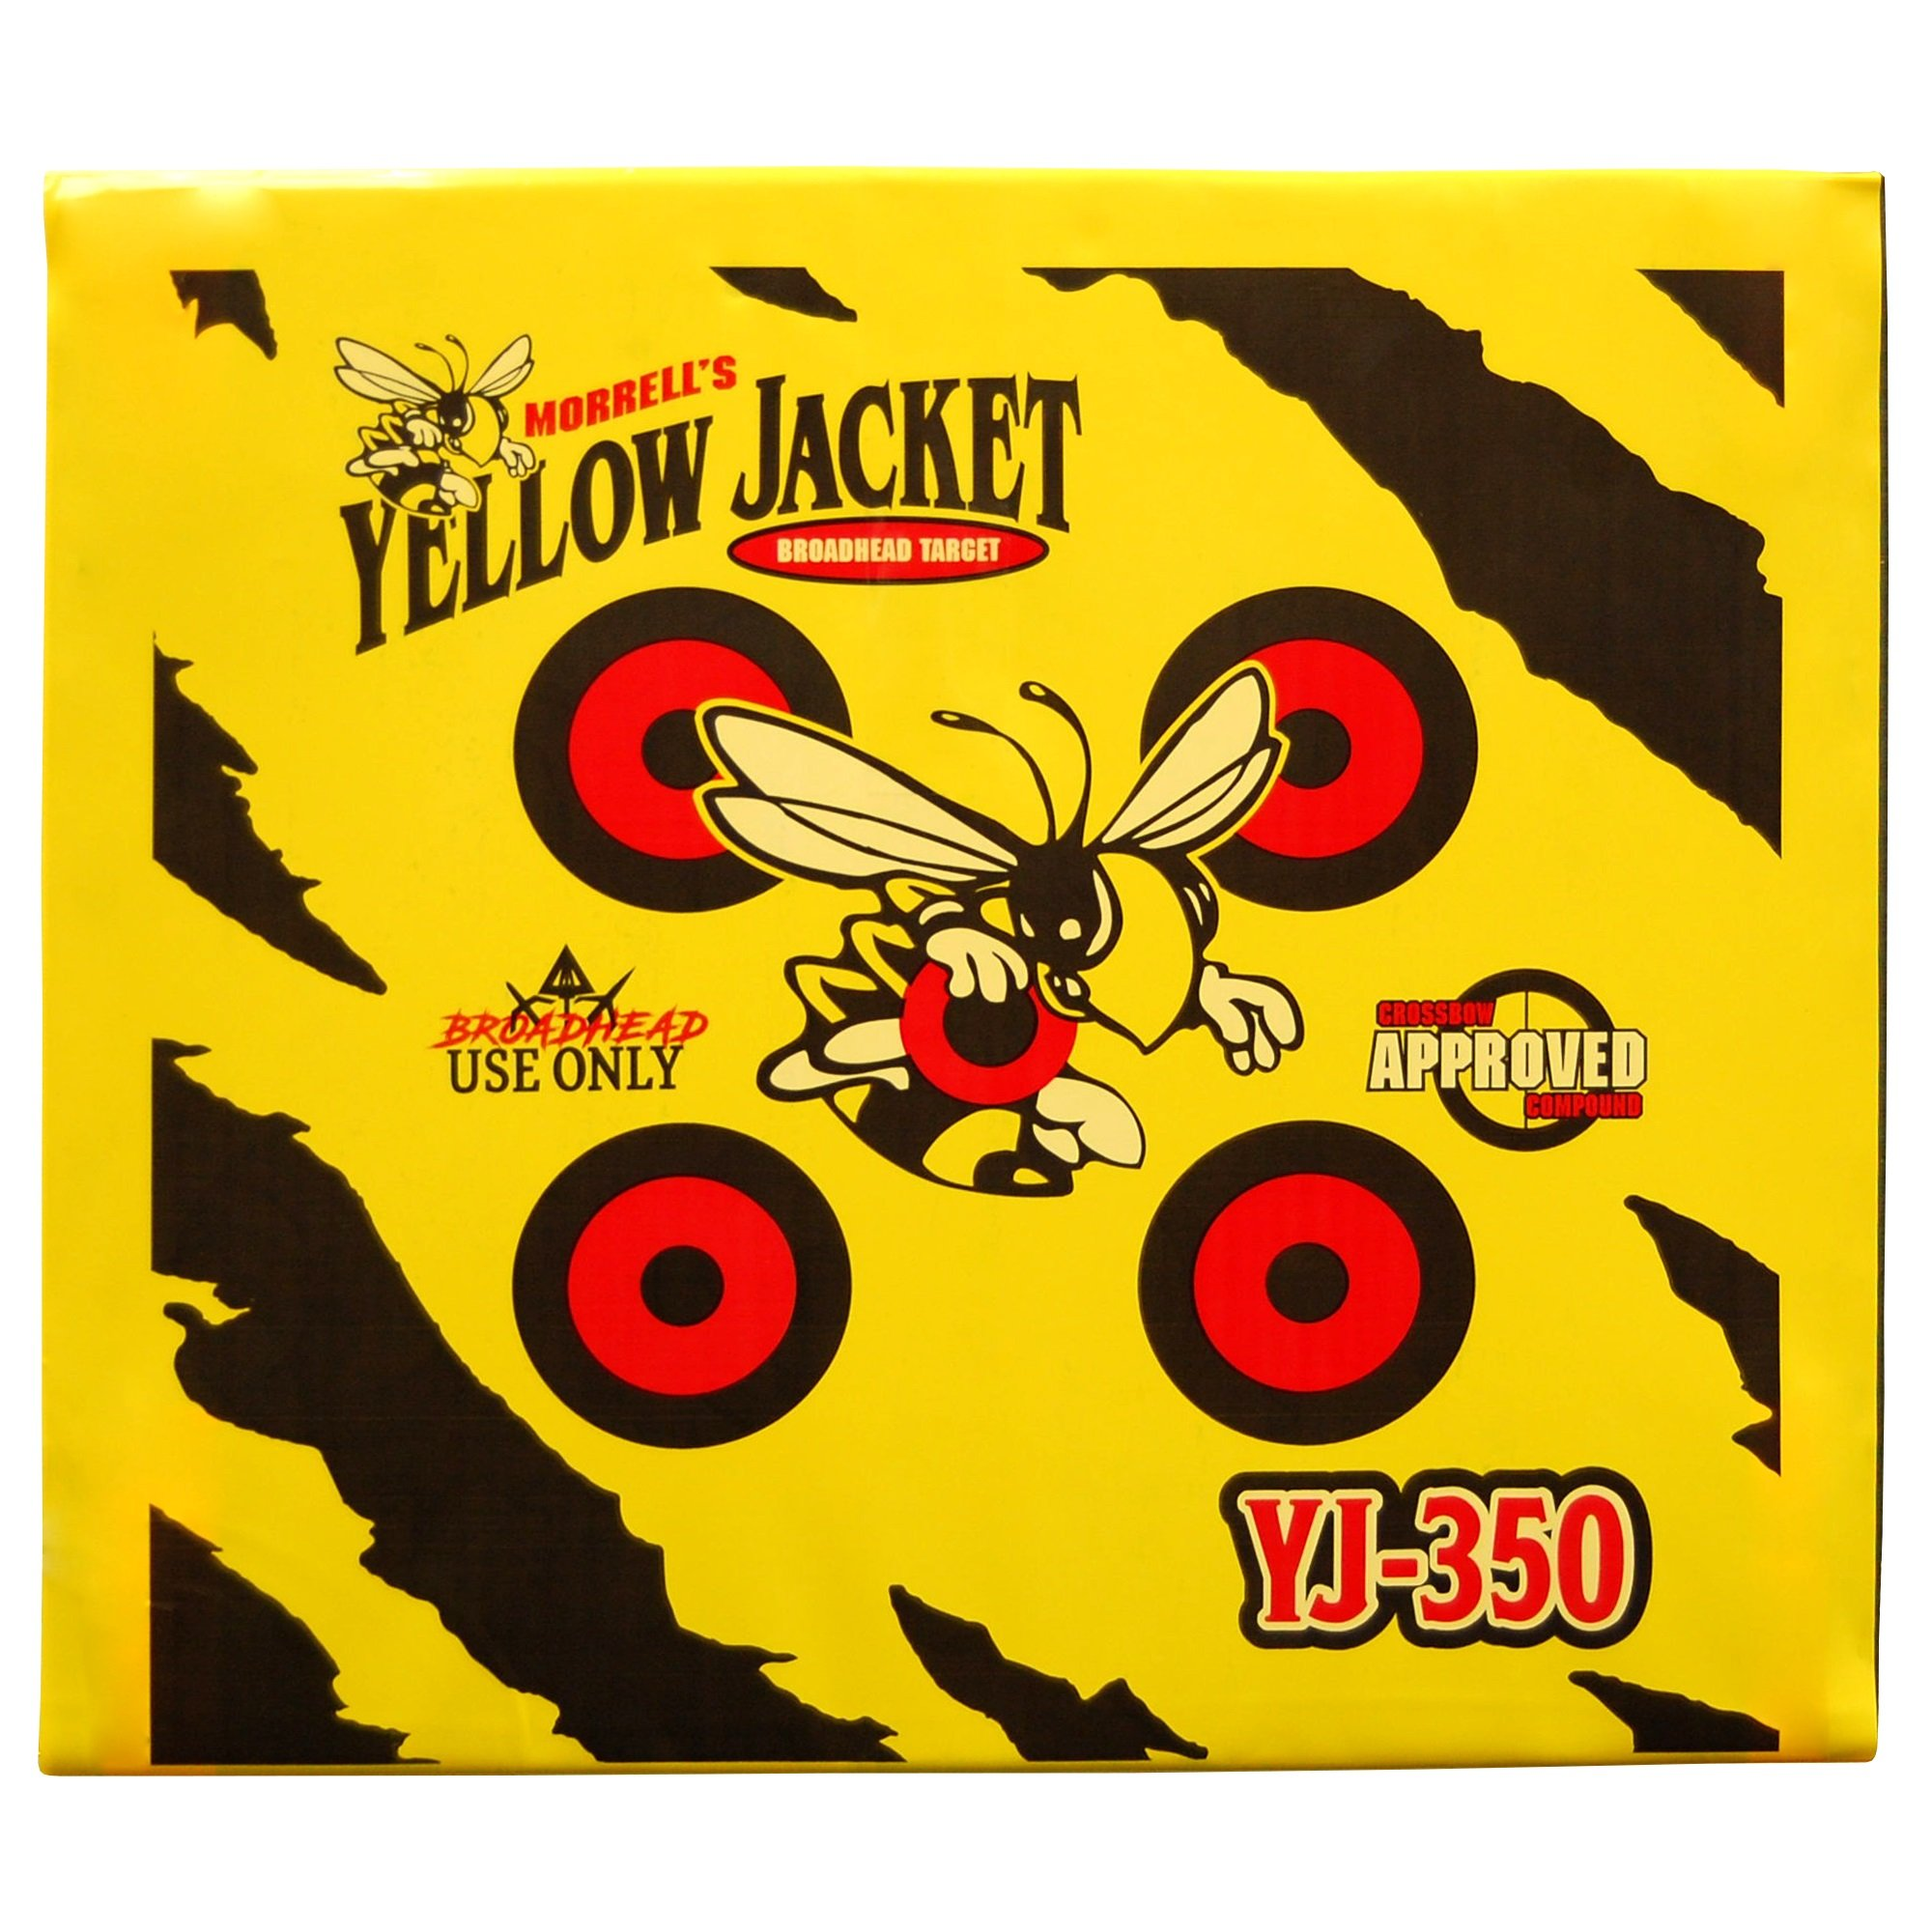 Morrell Yellow Jacket YJ-350 Broadhead Archery Target by Morrell (Image #5)